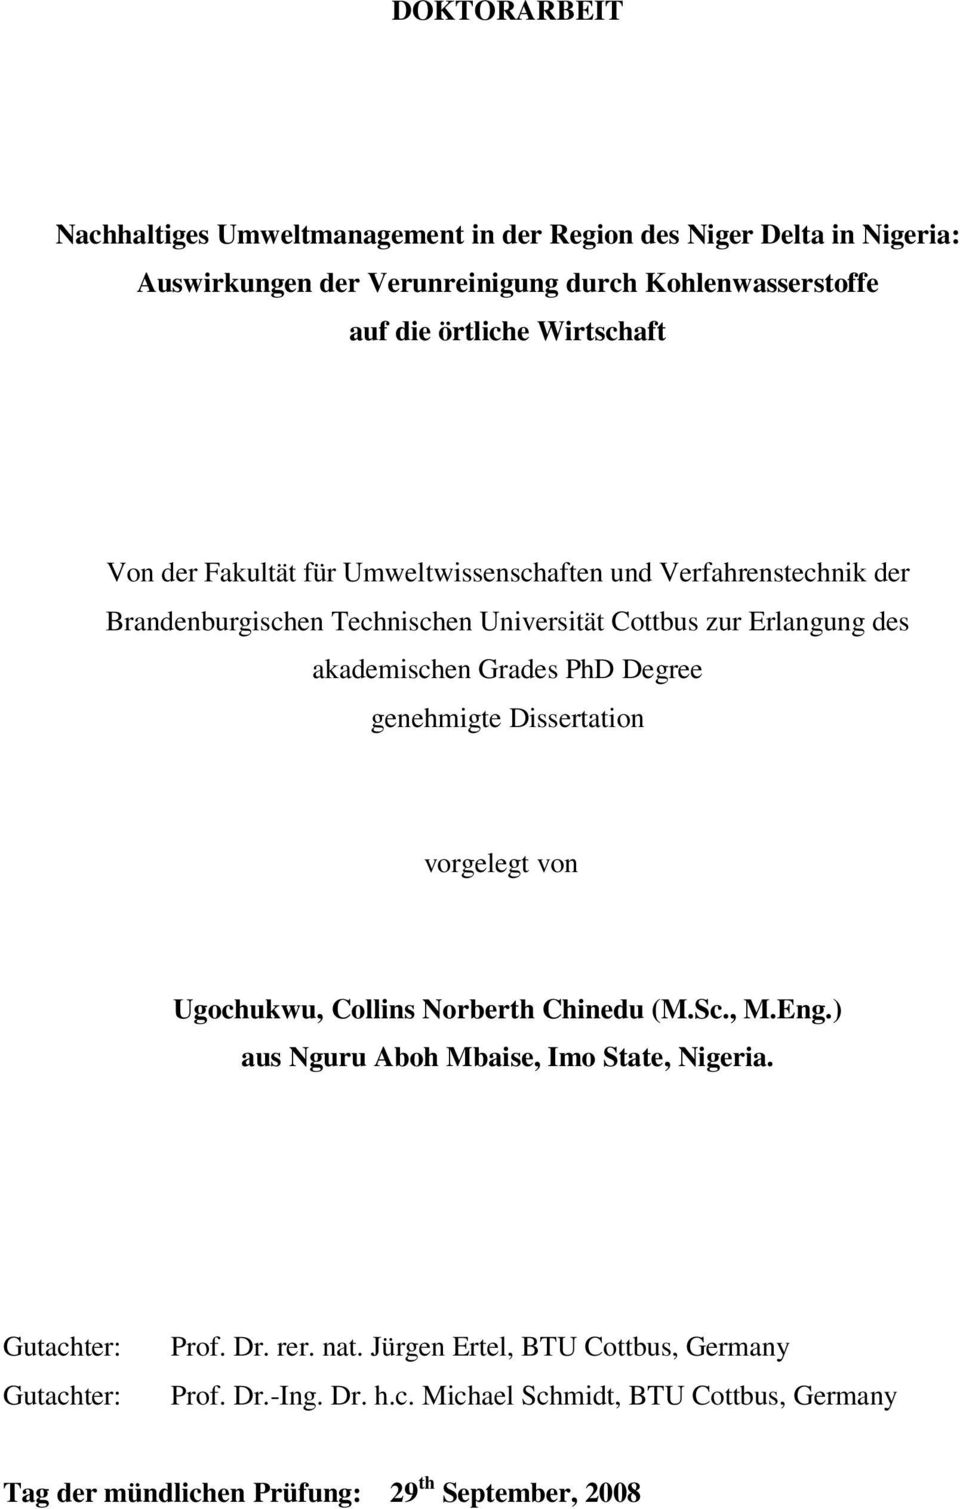 phd thesis on watershed management 2002 results  in presenting this thesis in partial fulfillment of the requirements for a  postgraduate  during the initial stages of development of the watershed, soil.